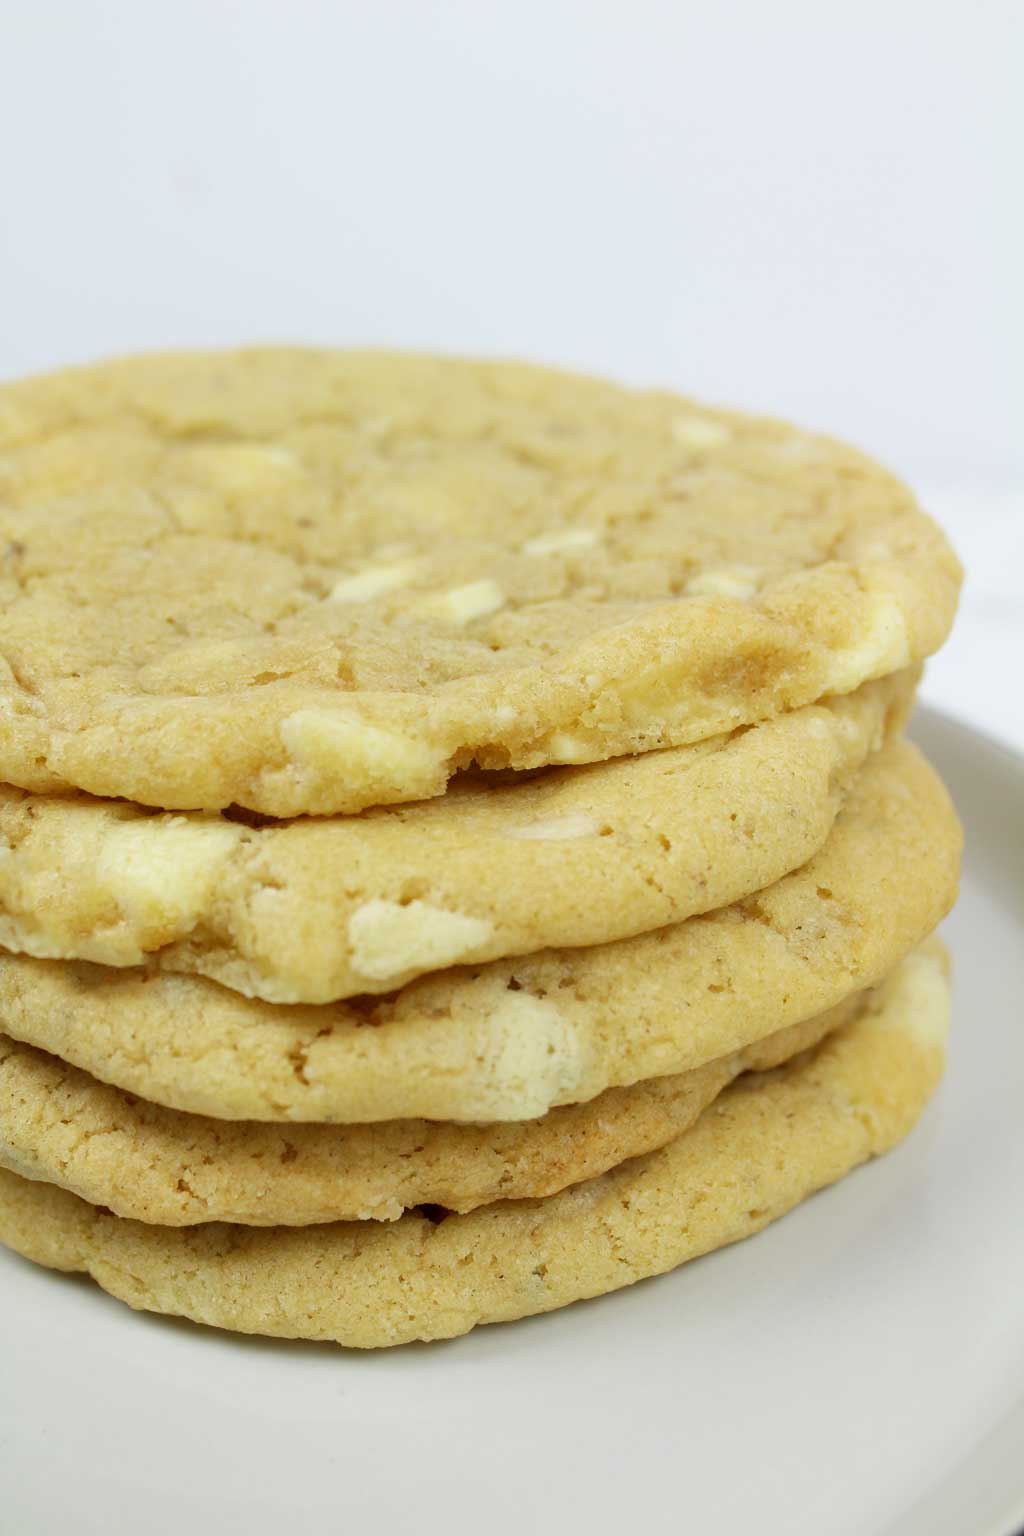 a stack of 5 white chocolate cookies on a plate